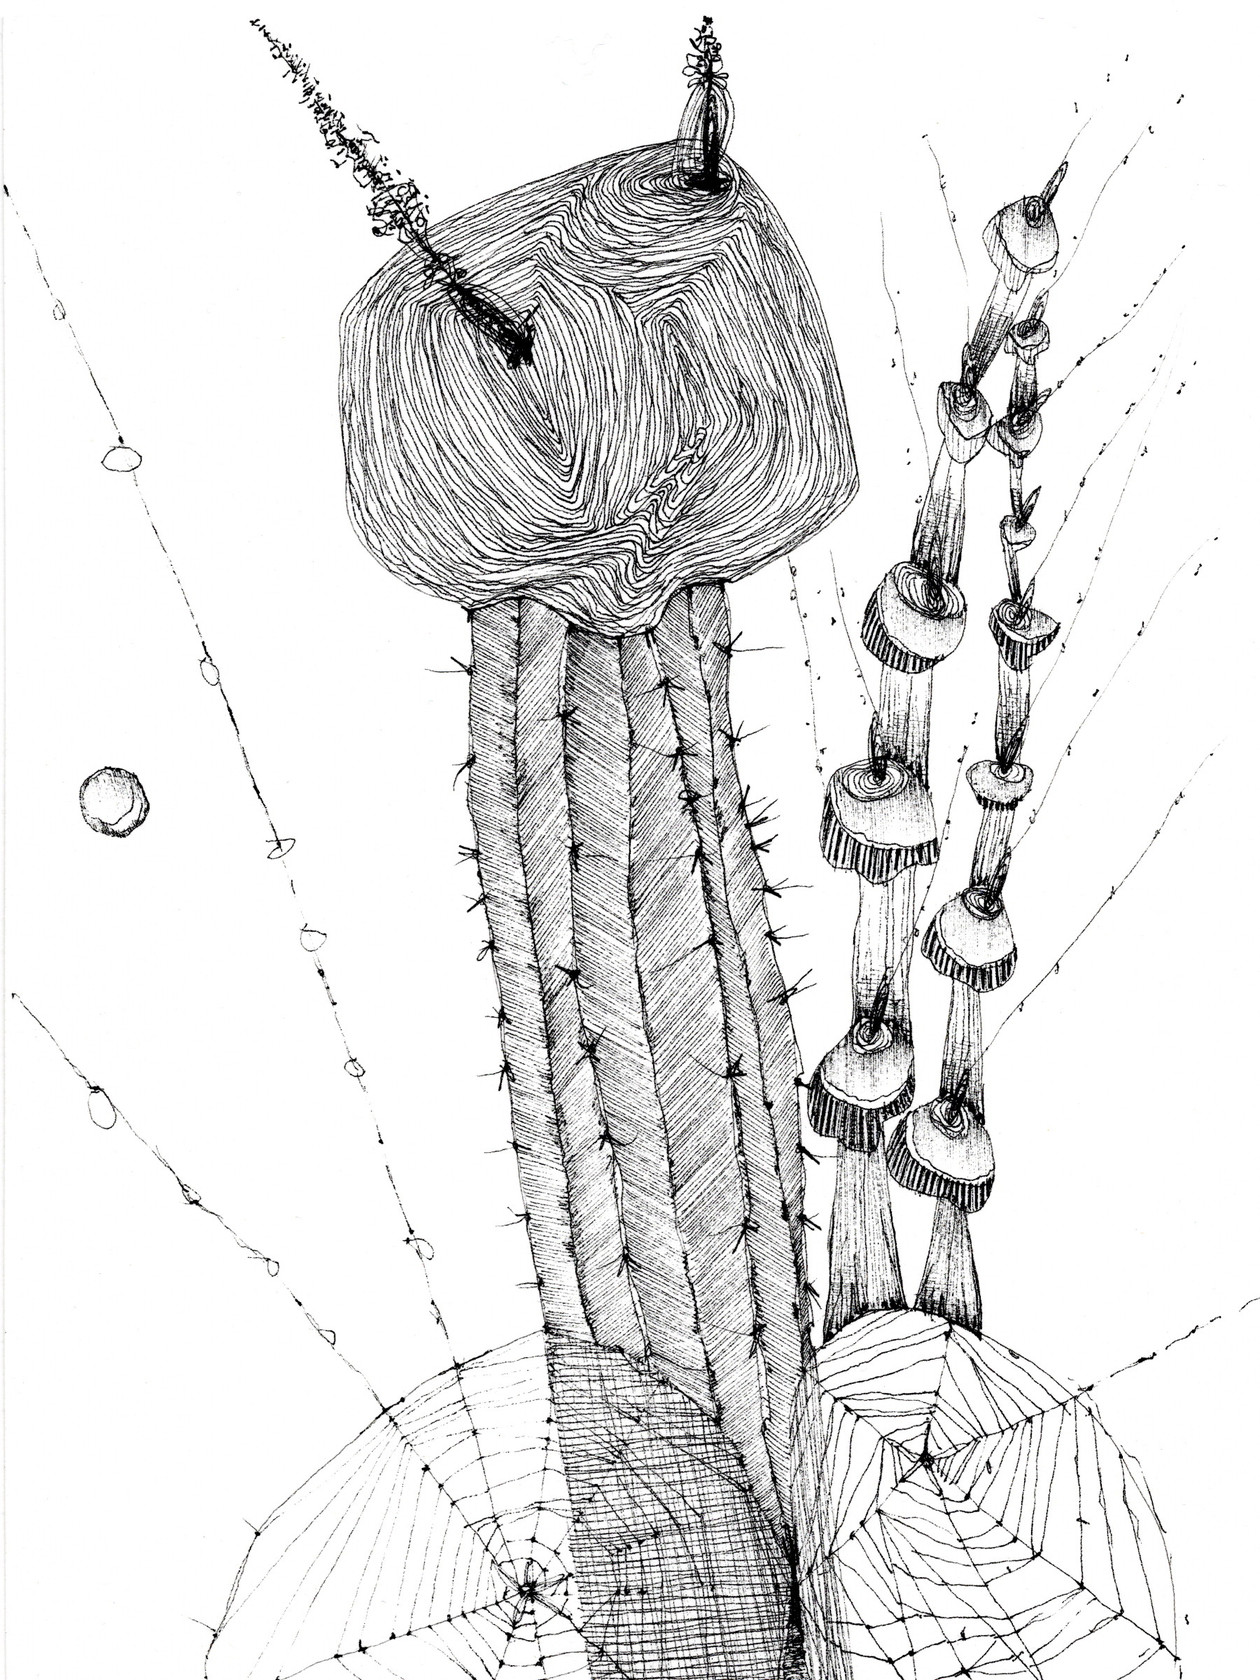 Untitled 12 (from New Drawings) (2021) by Rae Davis